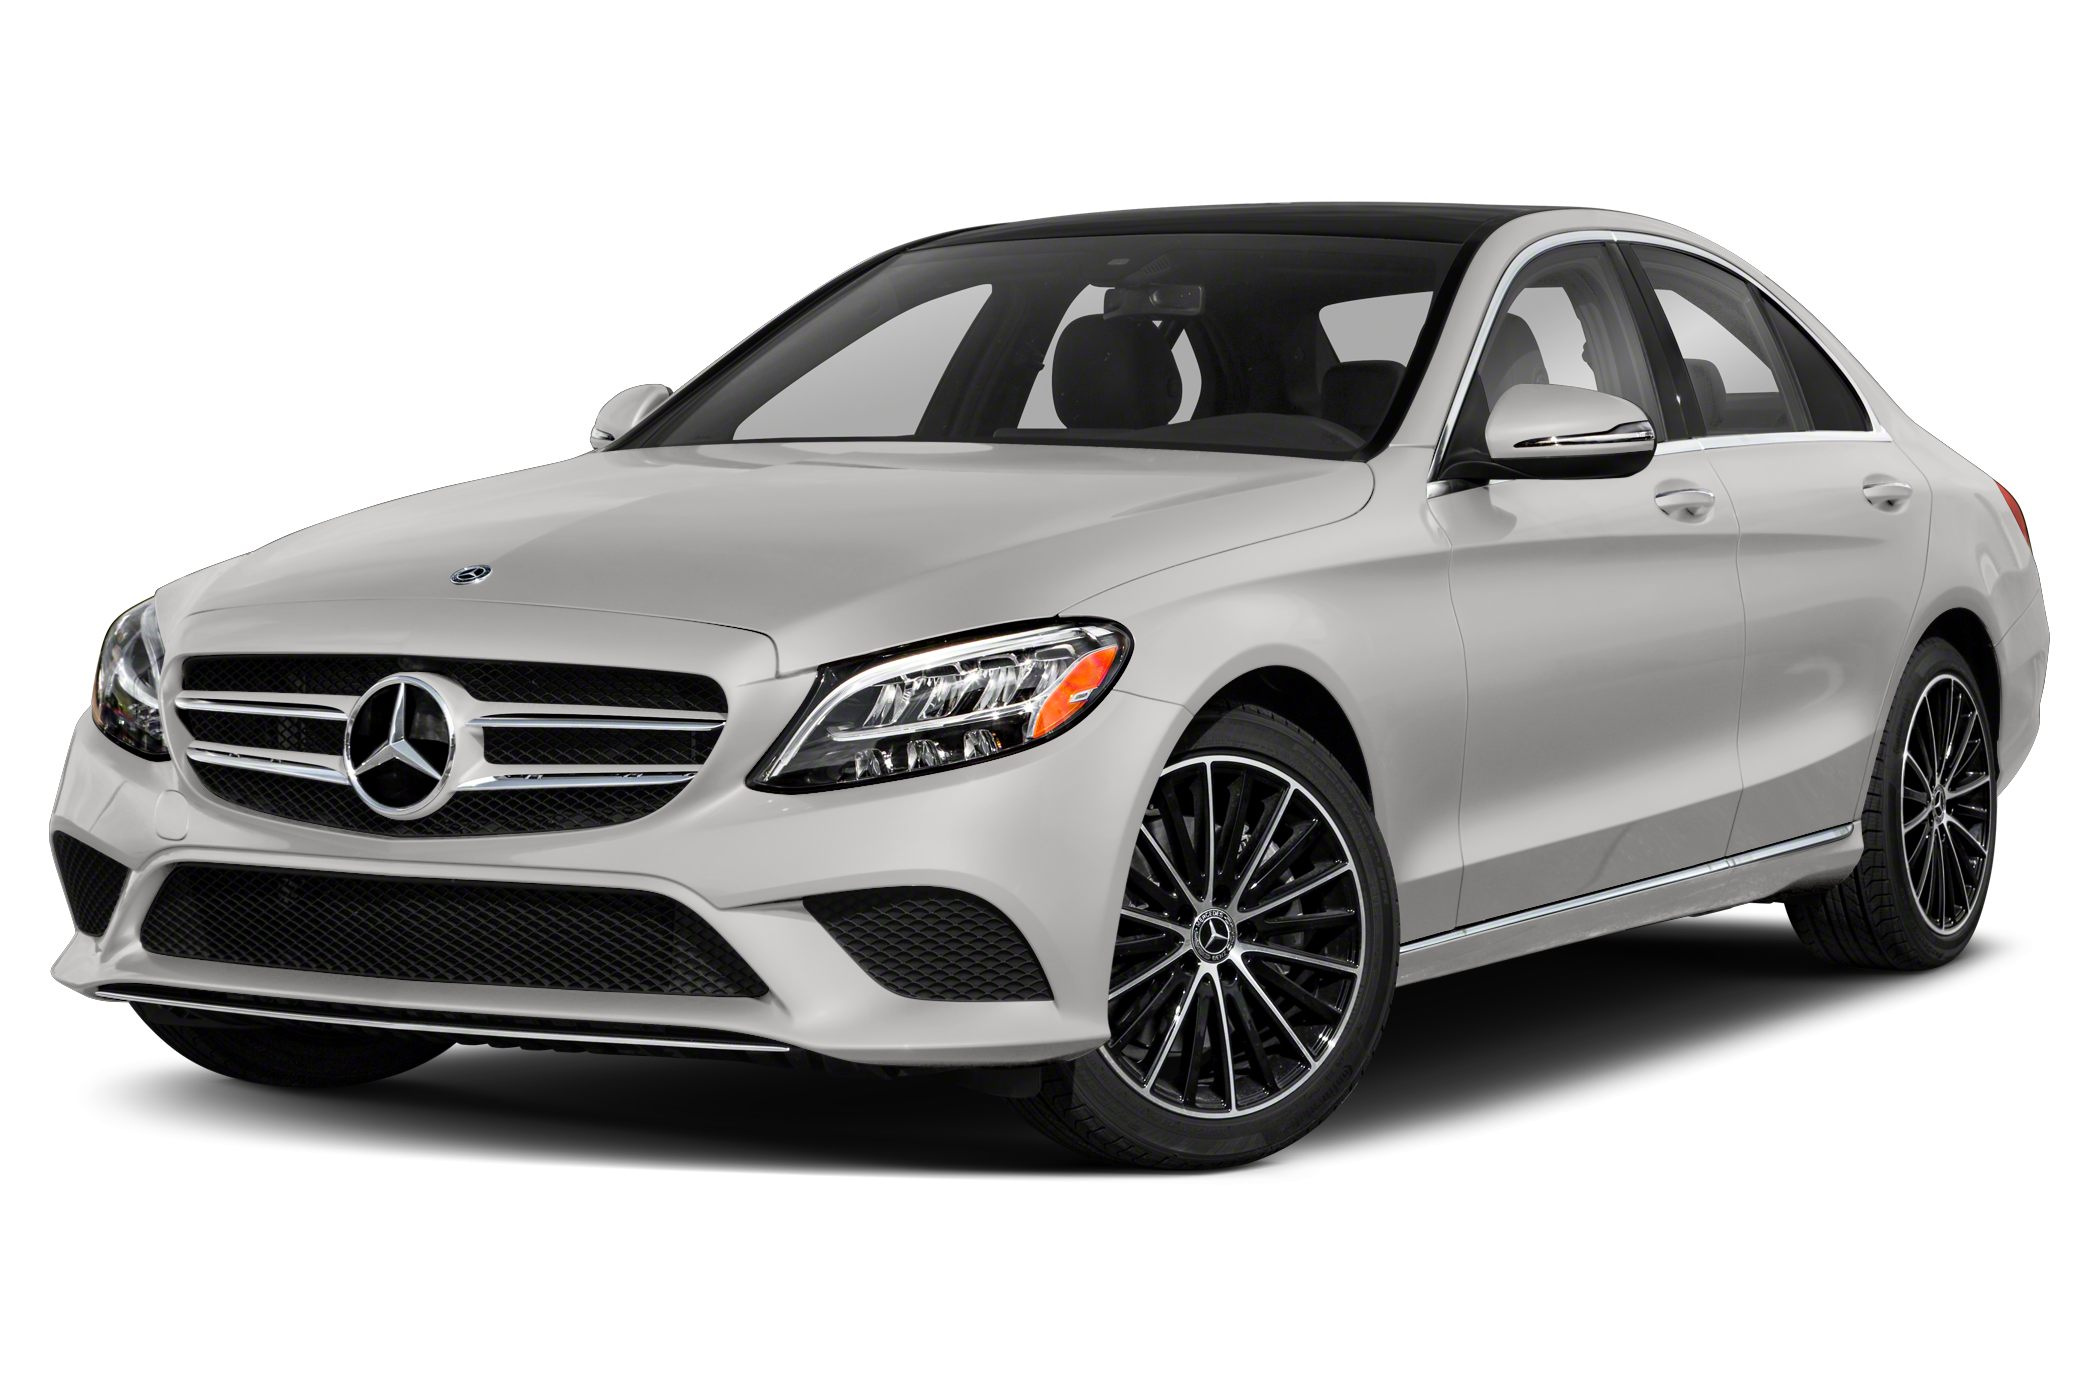 We take a closer look inside the 2015 Mercedes-Benz C-Class [w/videos]